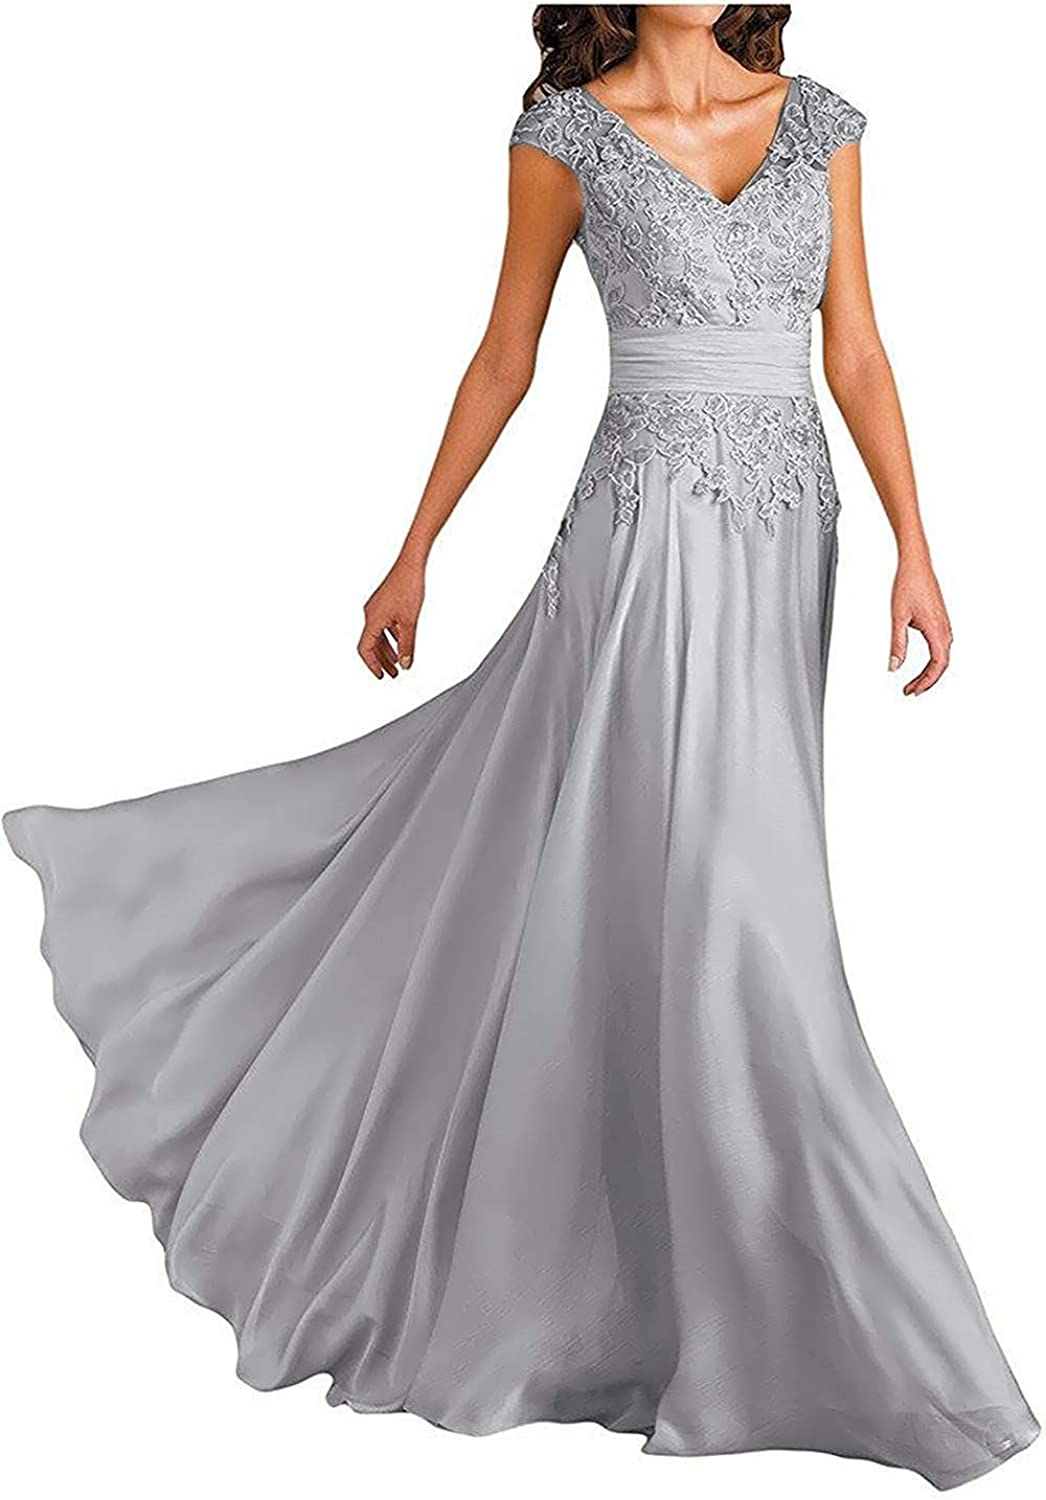 Women's Cap Sleeve Lace Mother of The Bride Dresses V Neck Aline Evening Formal Gowns M001